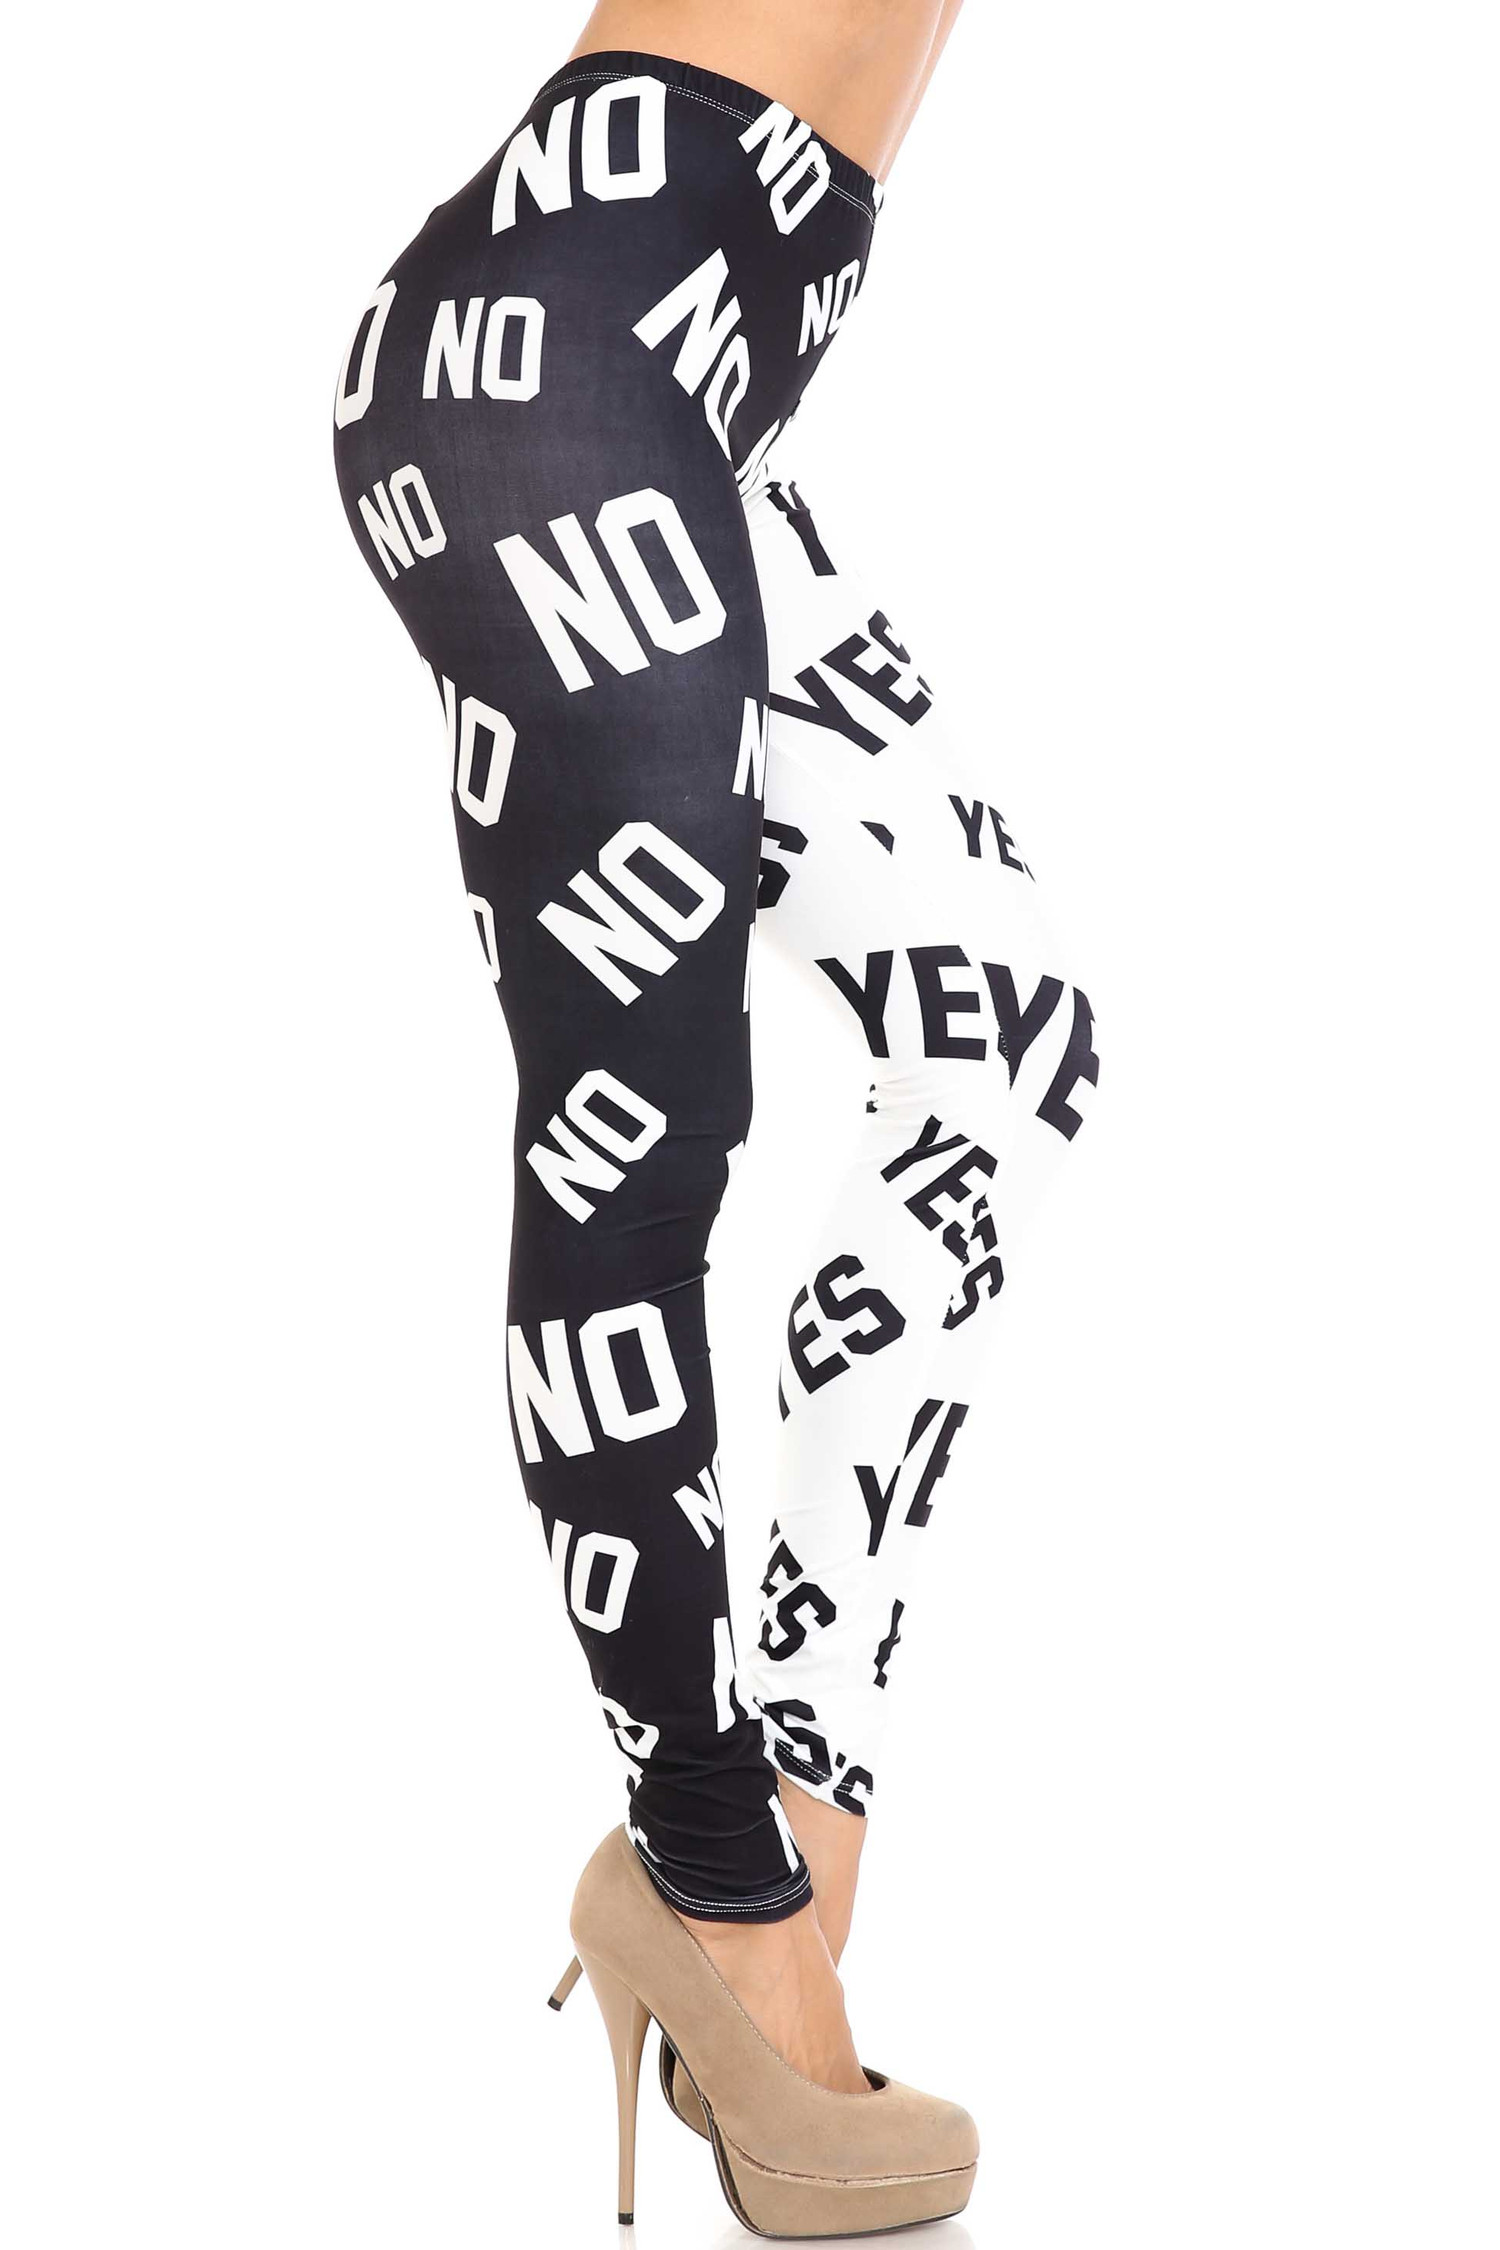 Creamy Soft Yes and No Leggings - By USA Fashion™